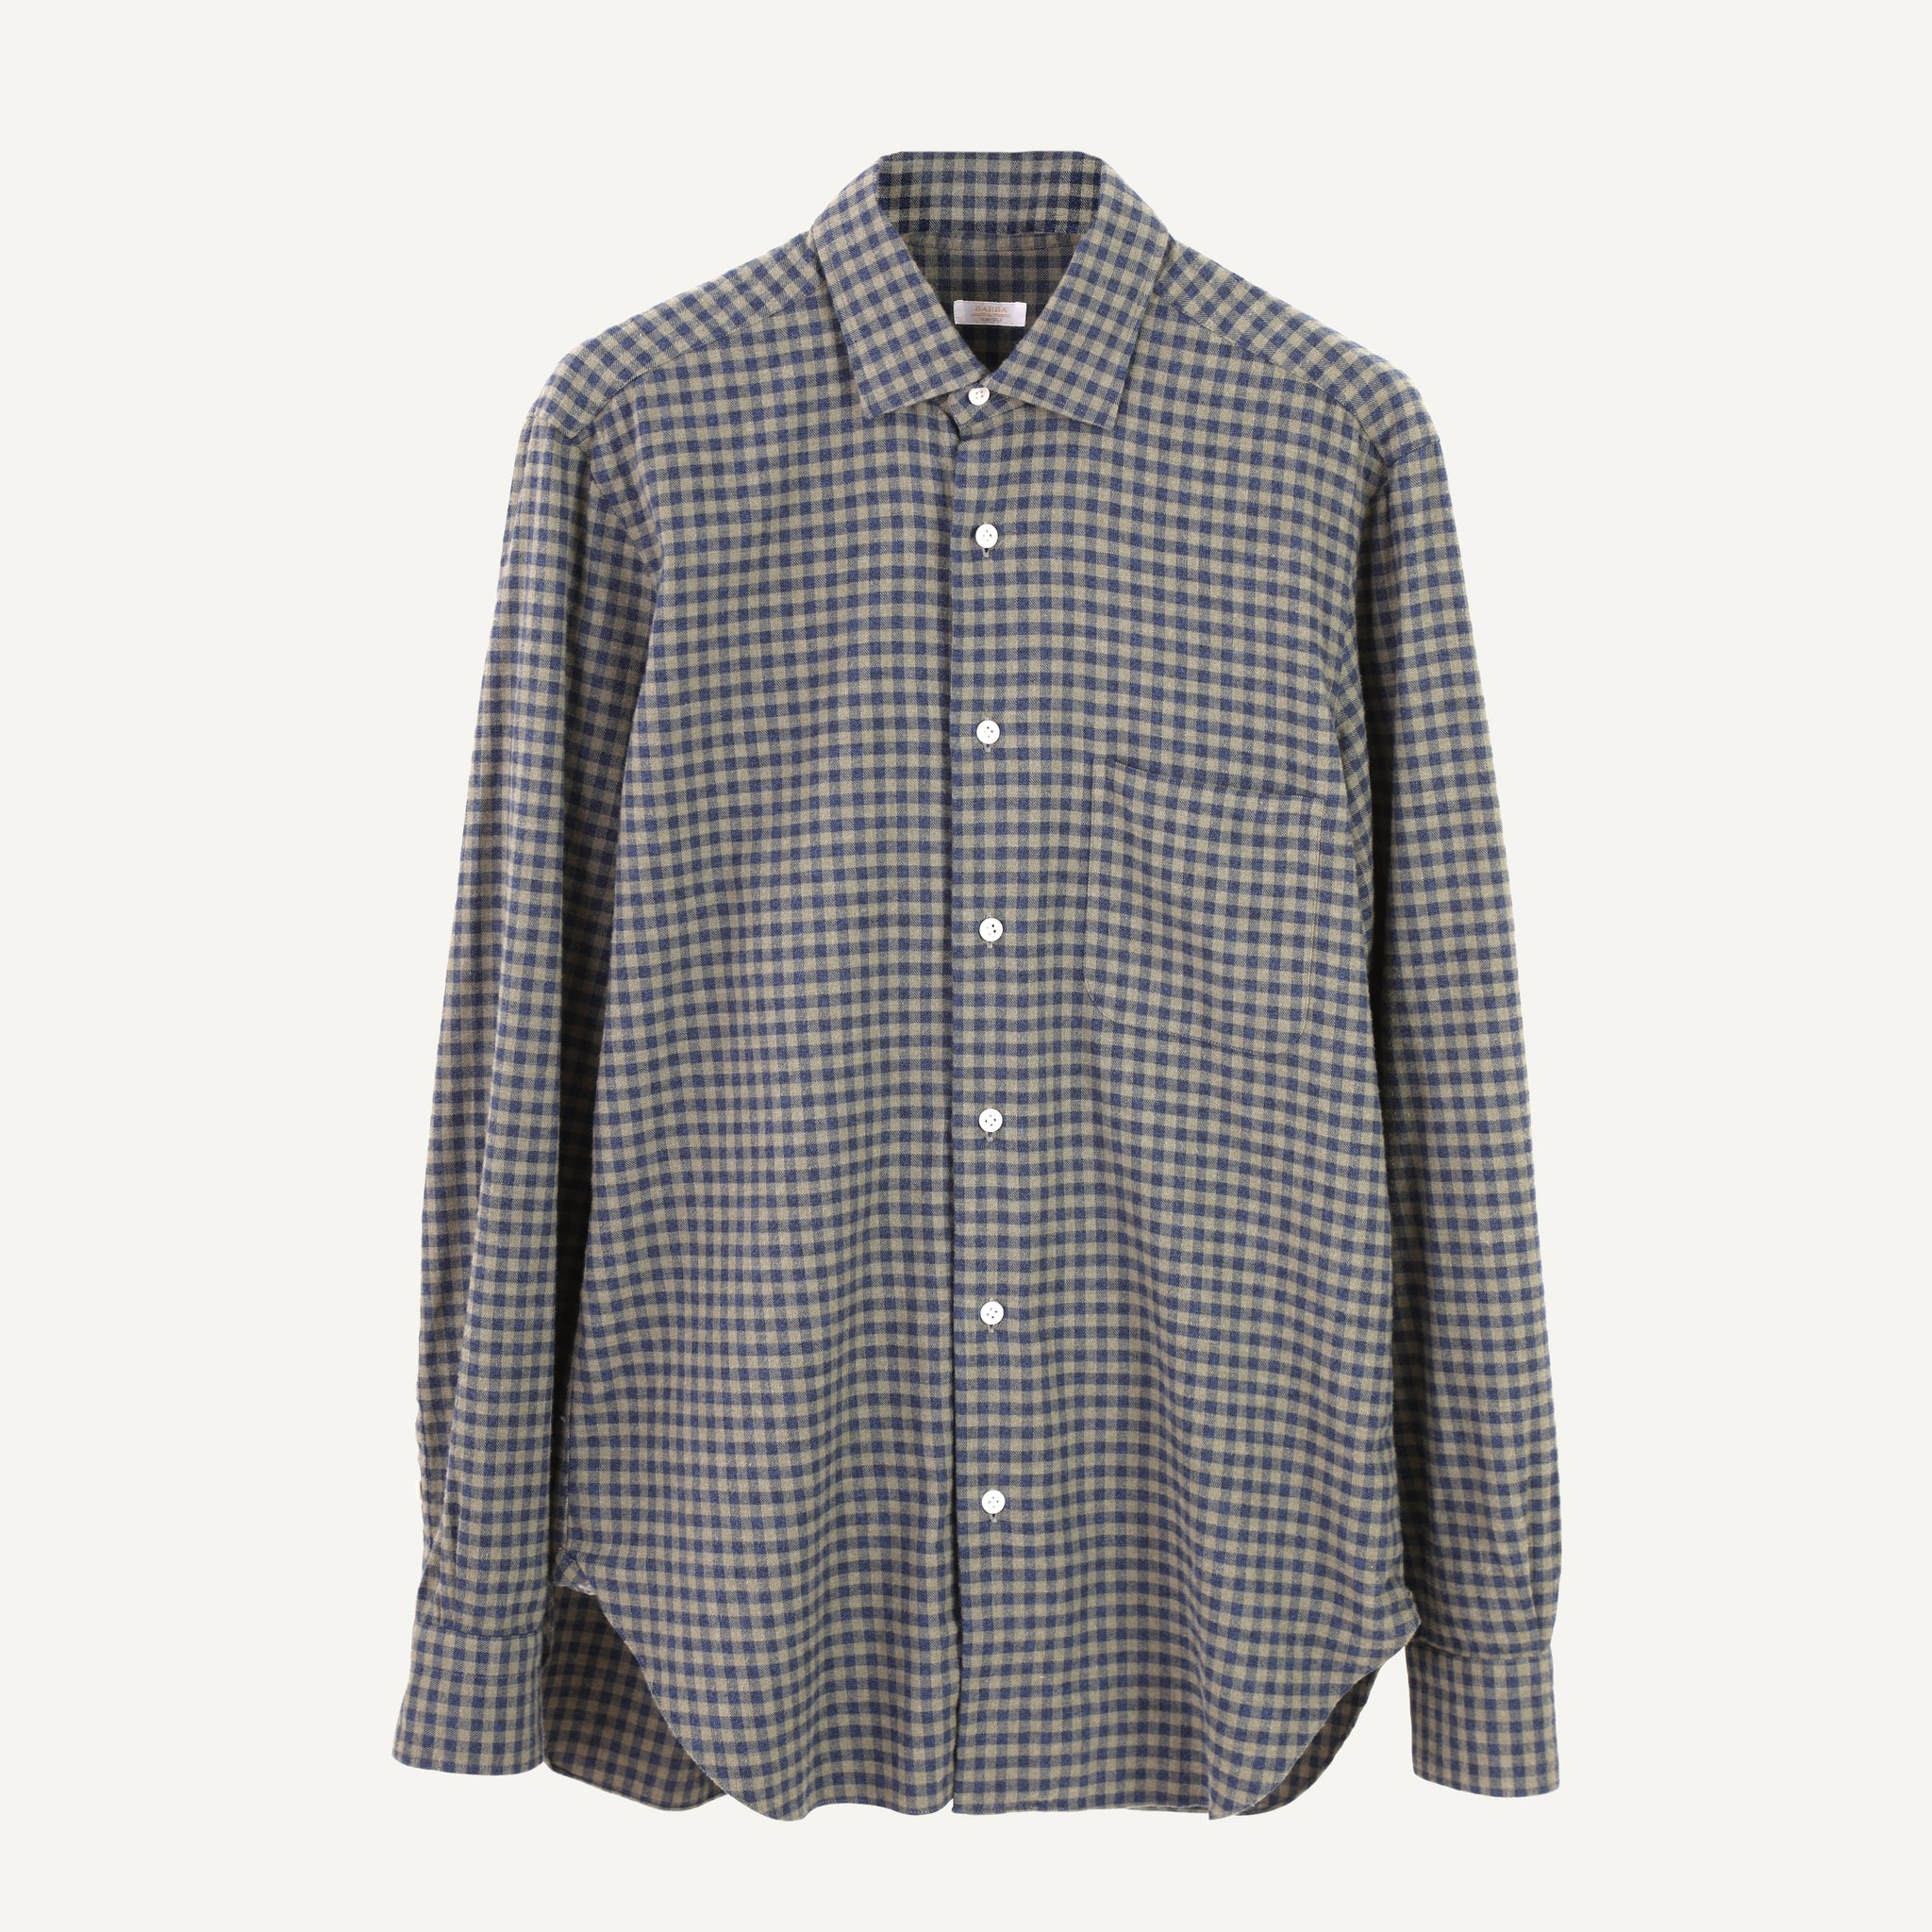 BARBA BRUSHED FLANNEL SHIRT